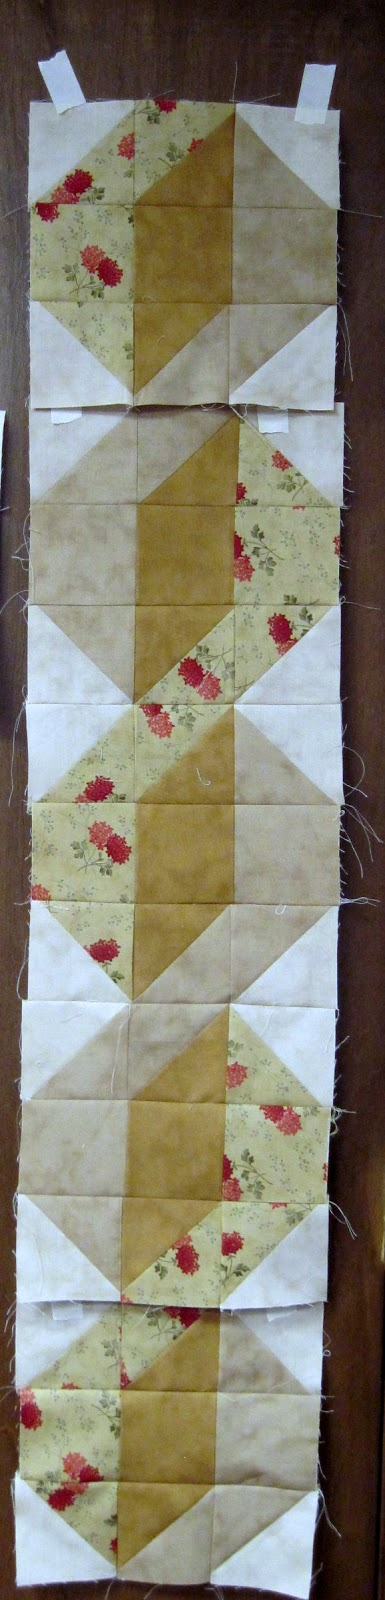 Jean S Quilting Page Drum Roll Please Snake Dance